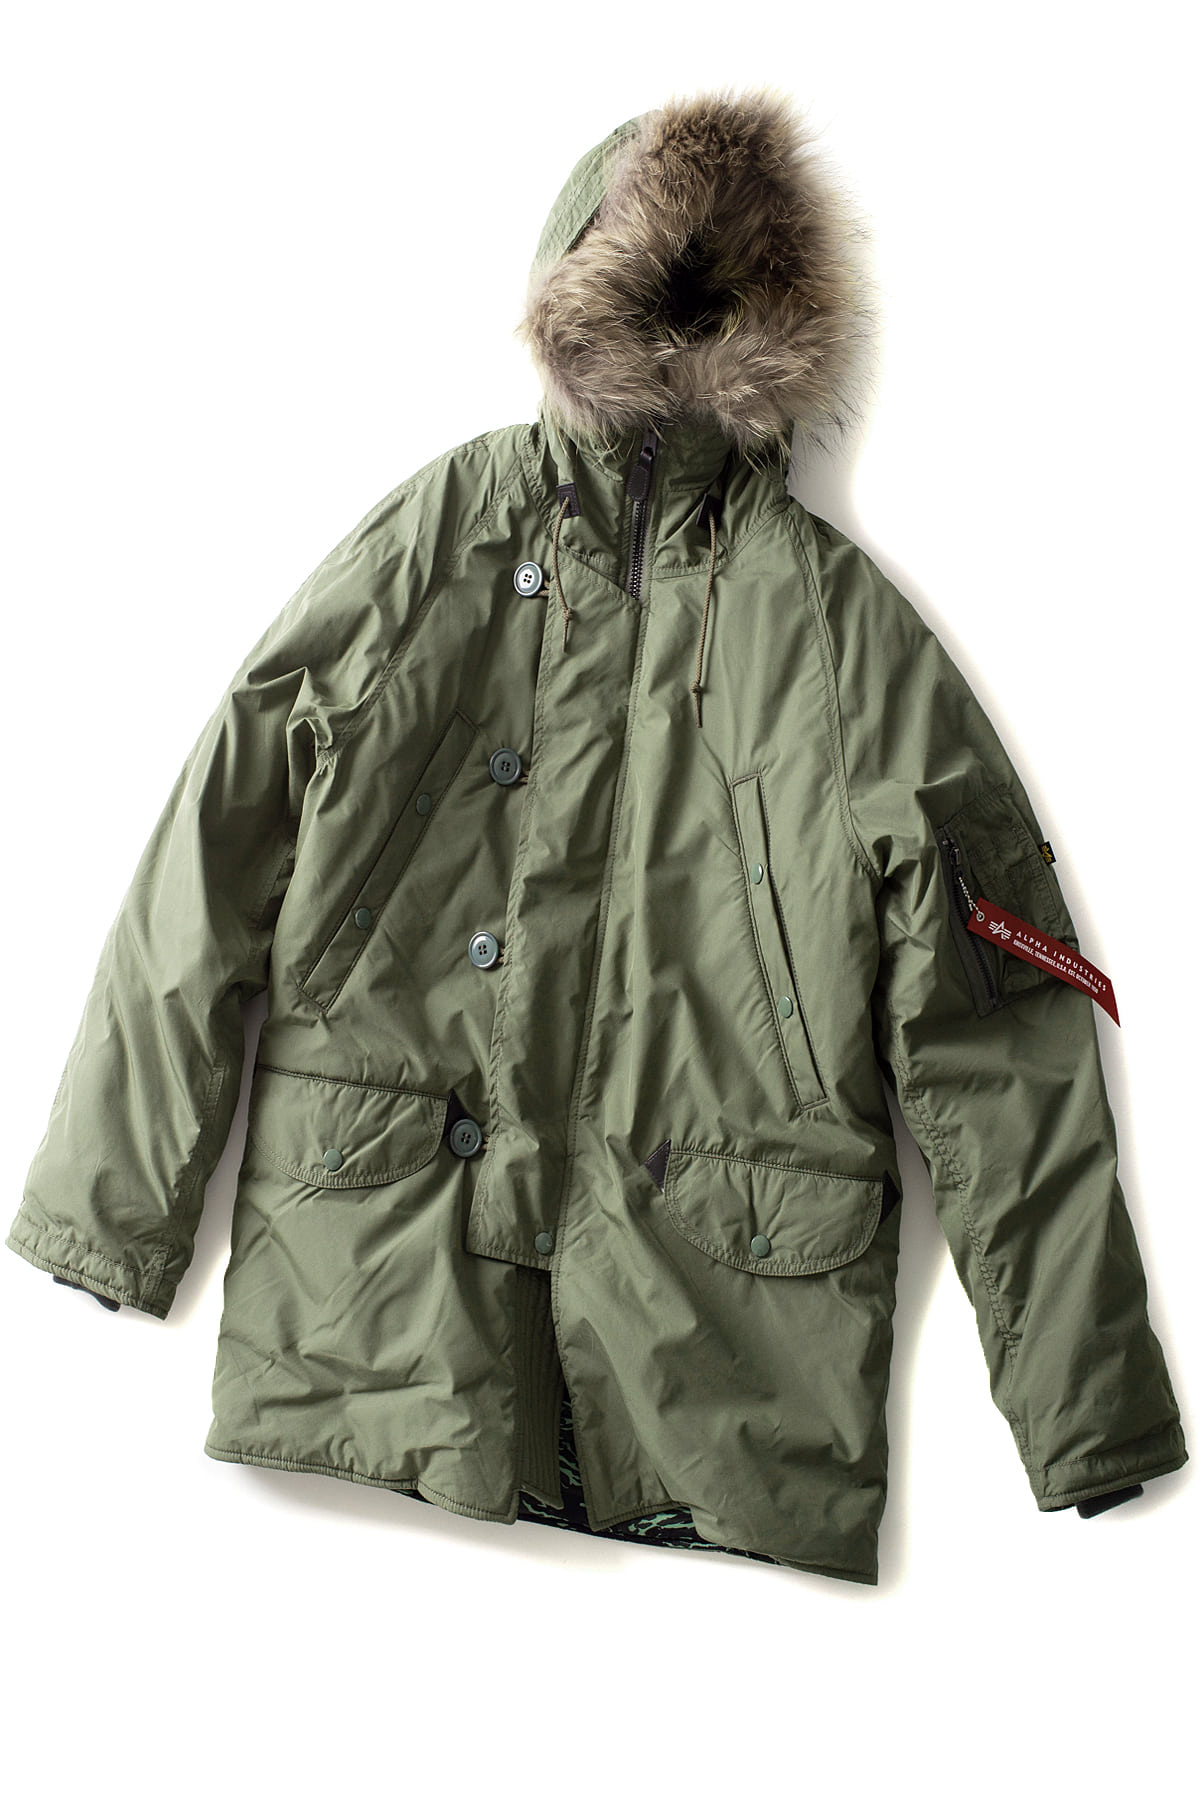 N.HOOLYWOOD x ALPHA INDUSTRIES : 982-CO01-064 (Olive)